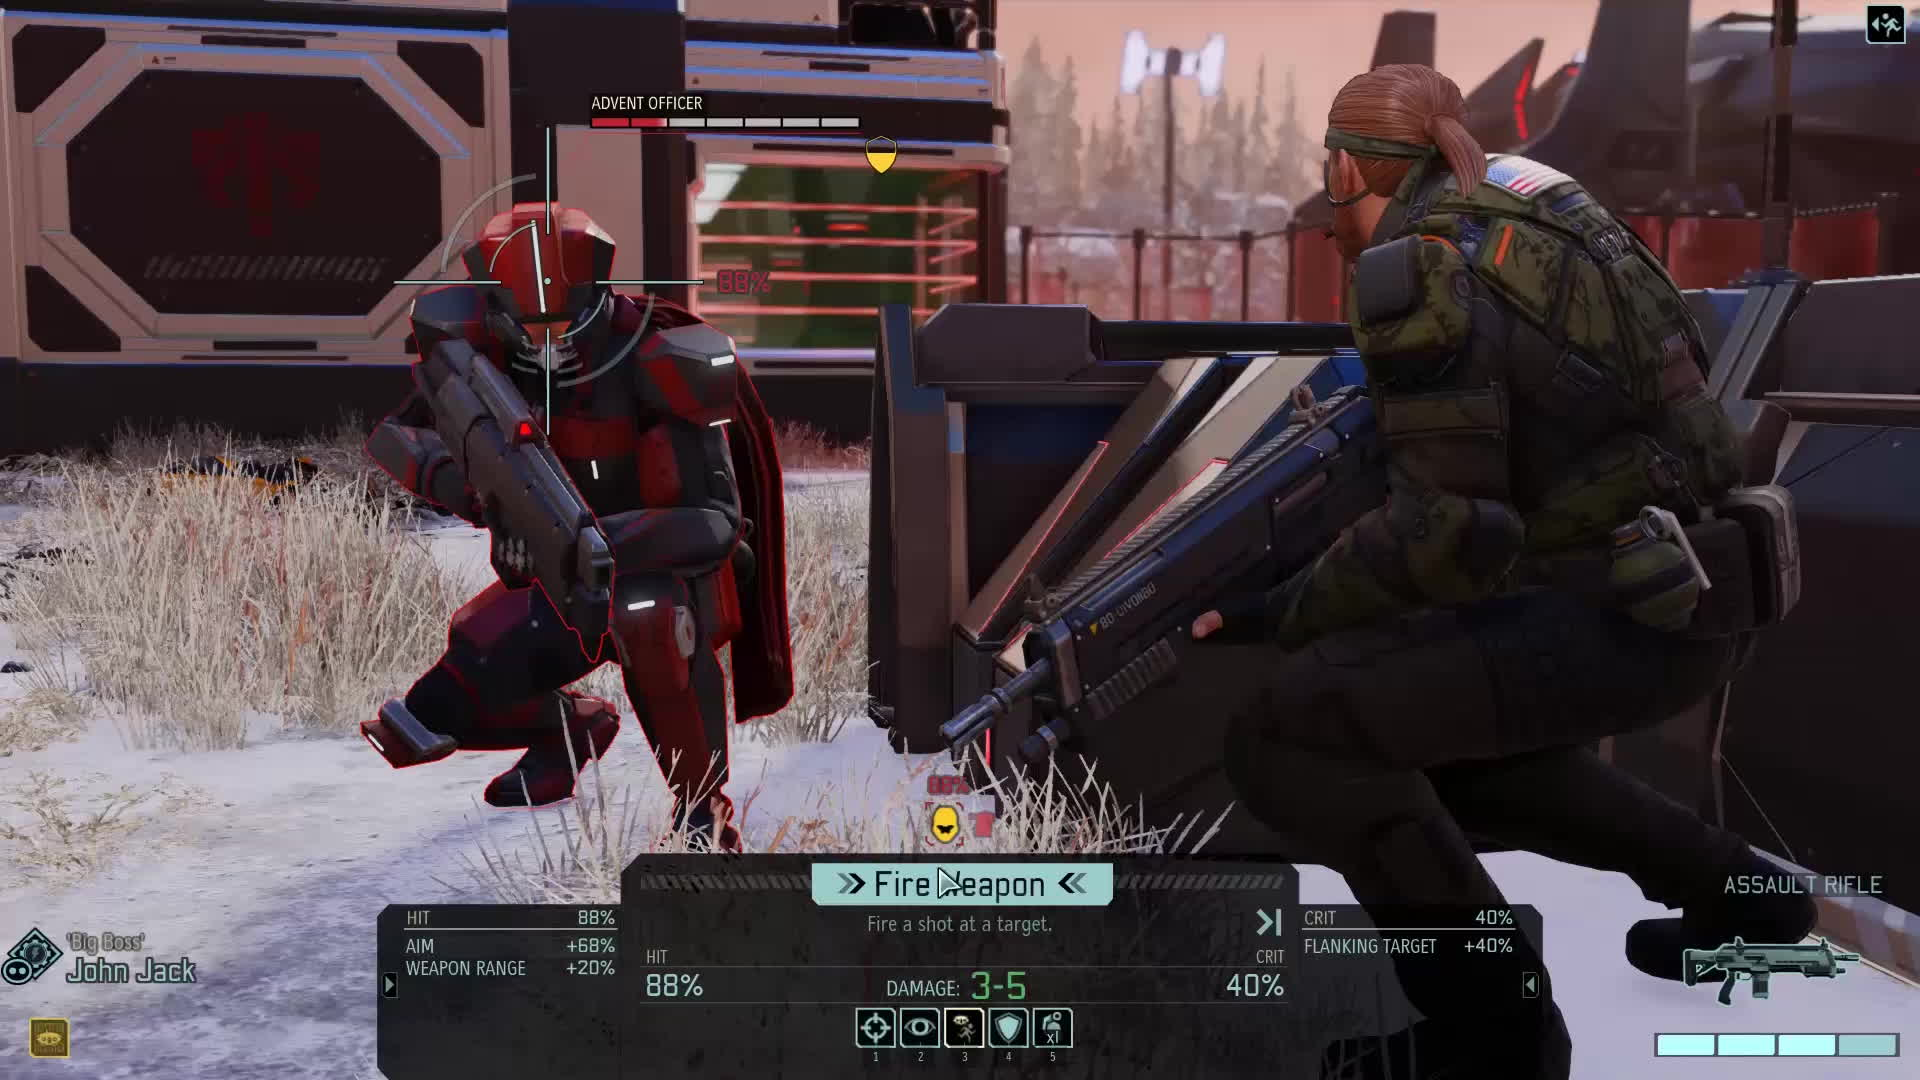 Xcom2 Frank Drebin Joins The Resistance X Post From R Xcom Reddit Gif By Erixperience Find Make Share Gfycat Gifs